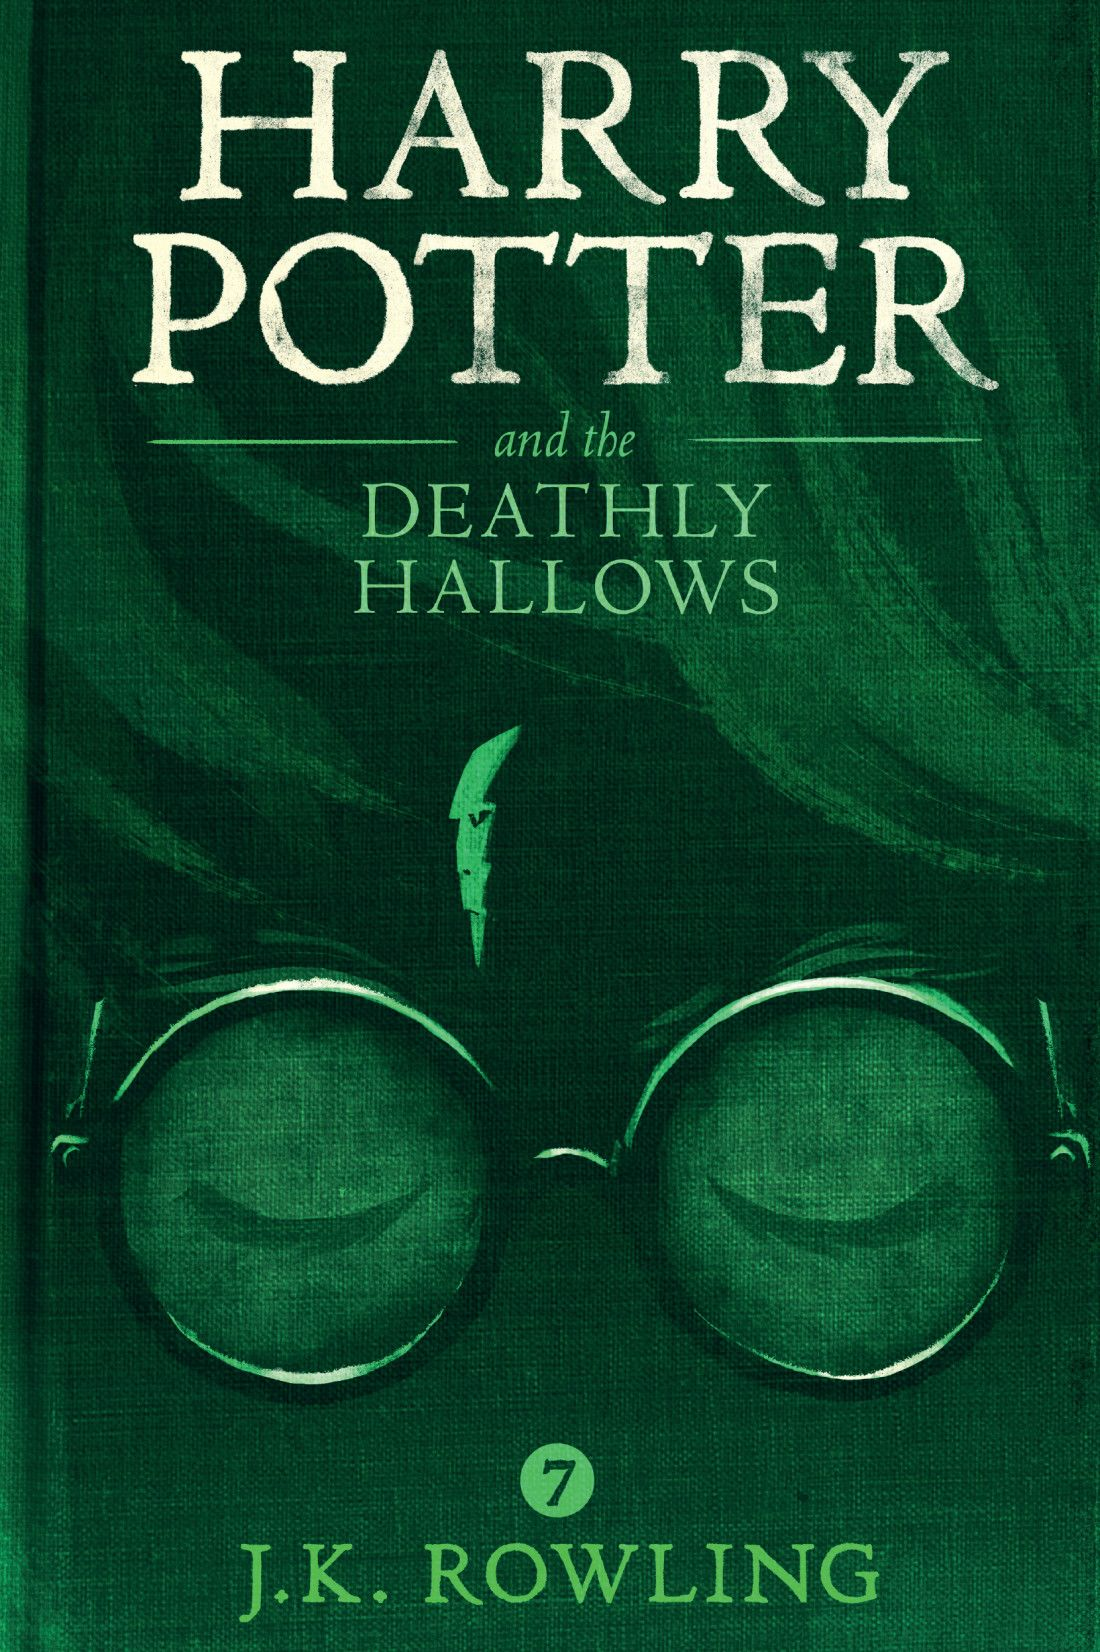 Harry Potter Book Covers ~ Harry potter covers designed by olly moss for pottermore